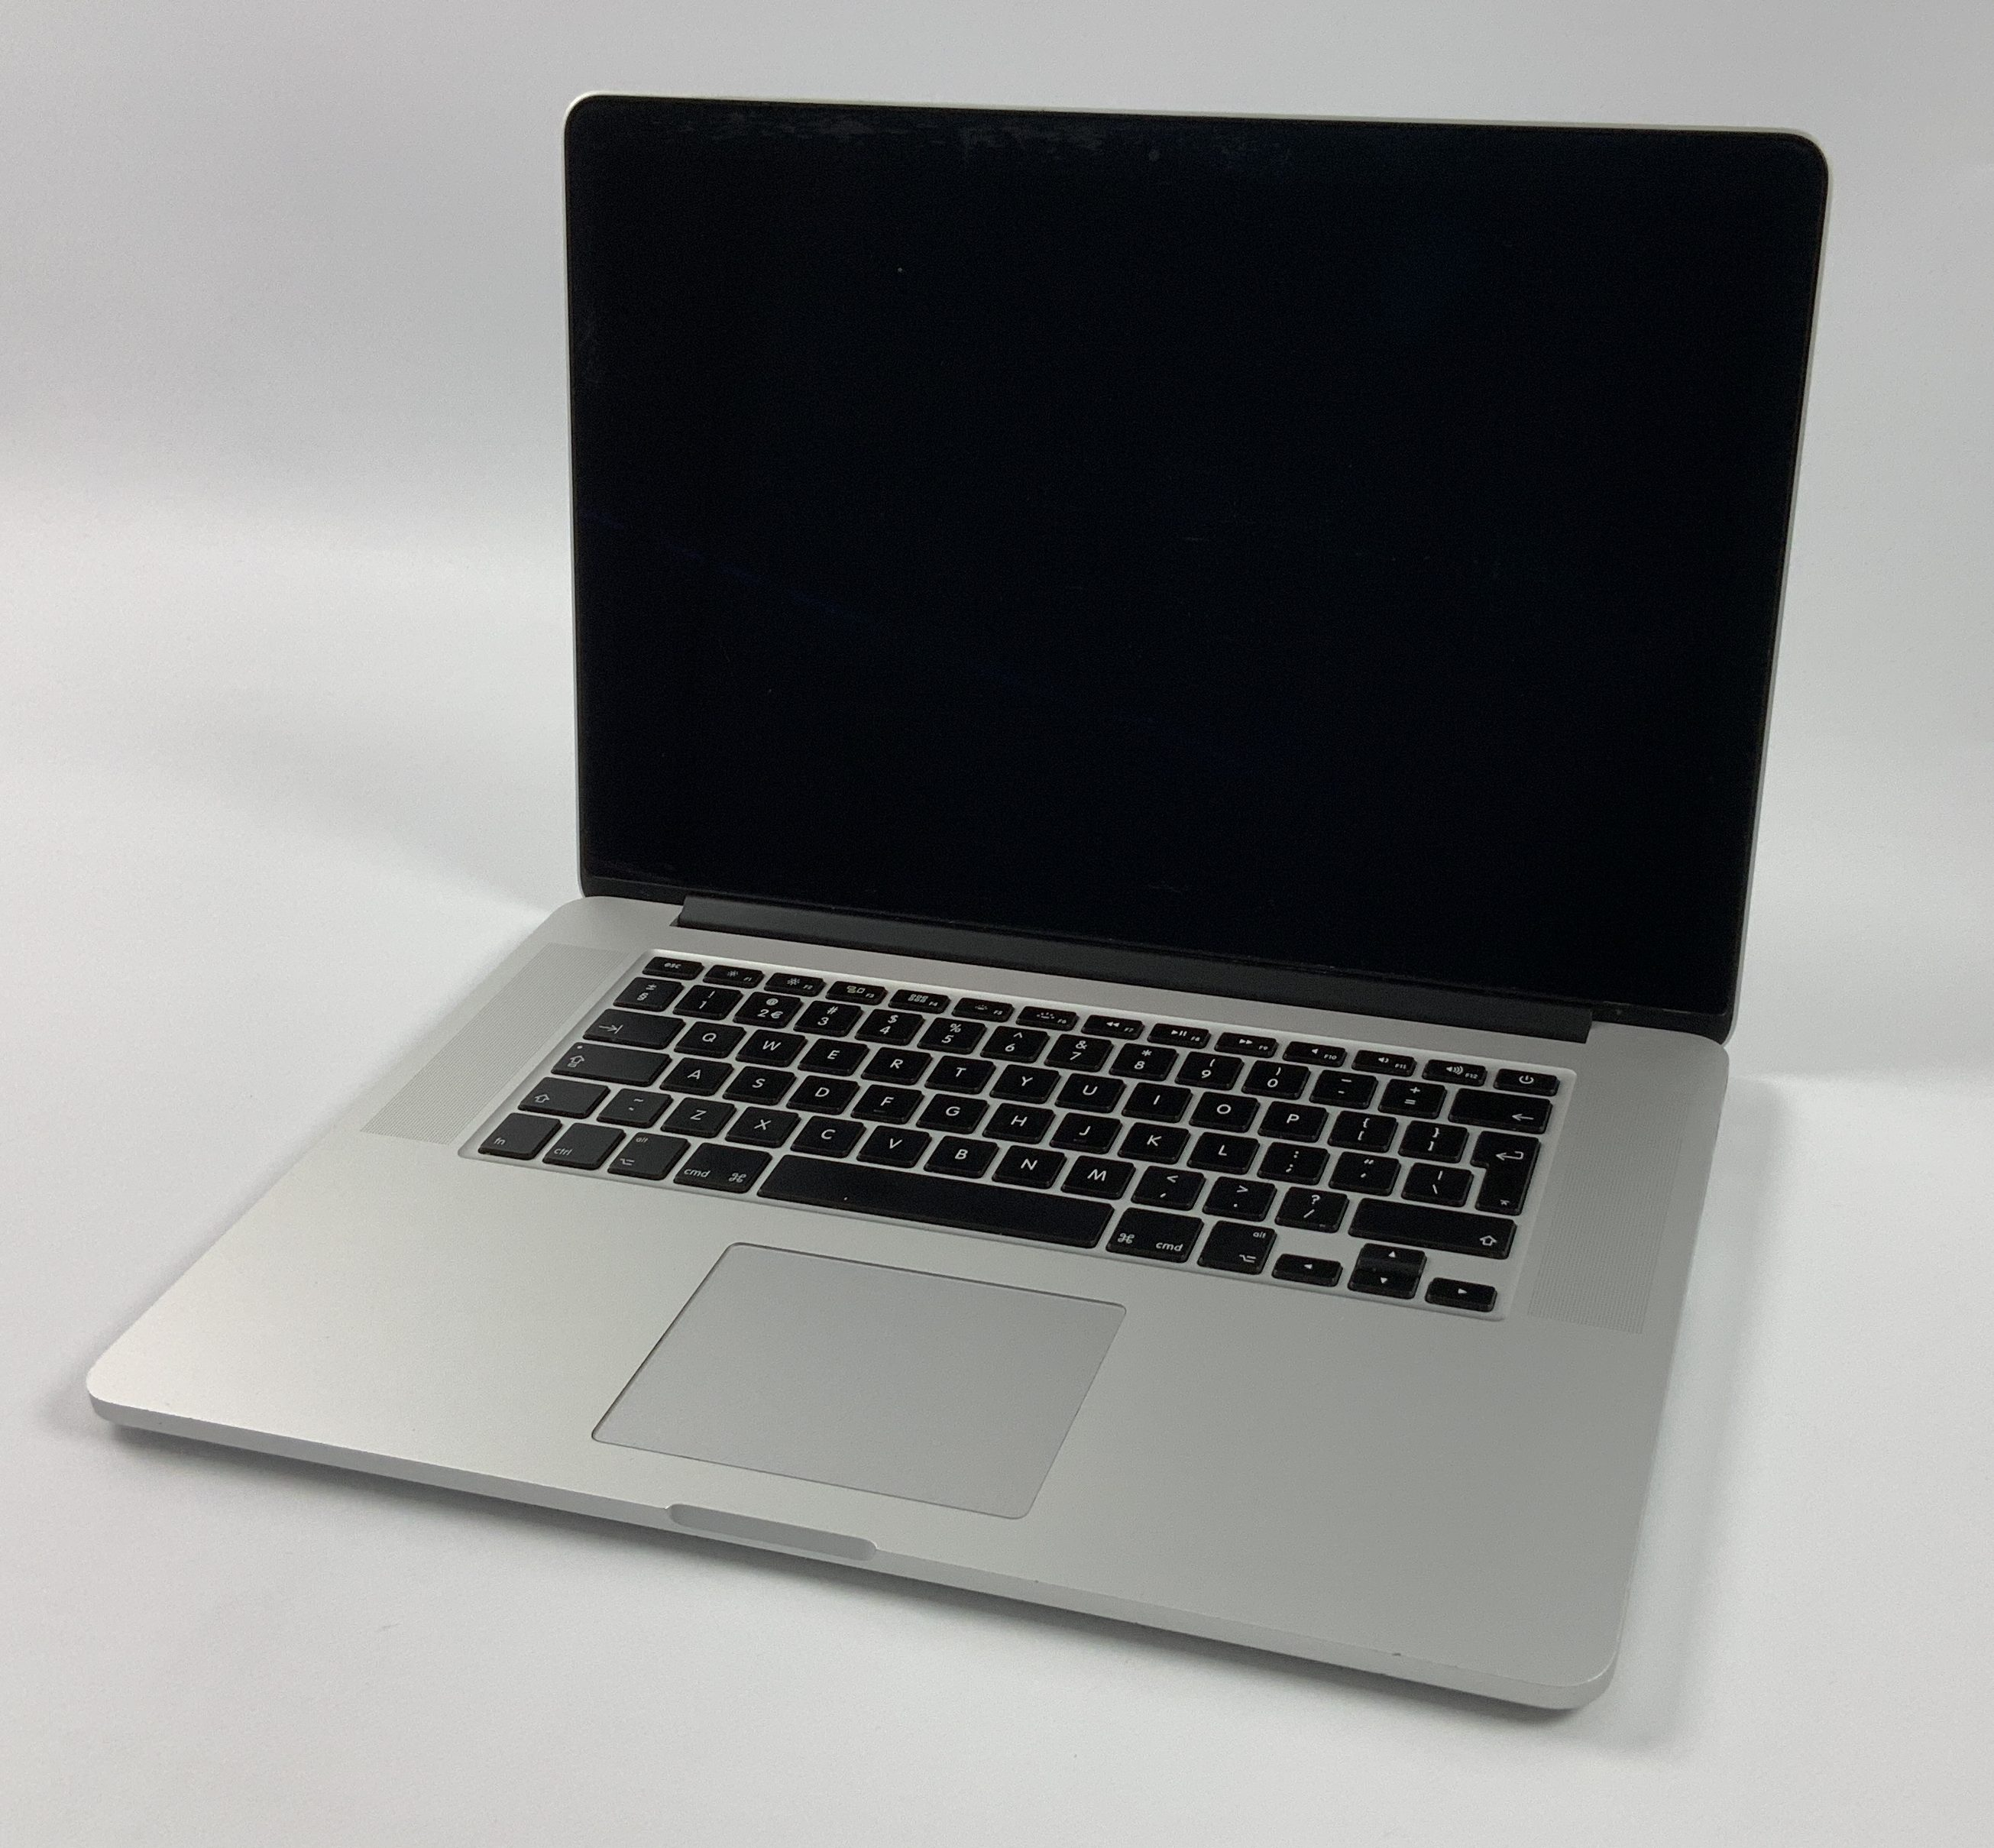 "MacBook Pro Retina 15"" Mid 2015 (Intel Quad-Core i7 2.5 GHz 16 GB RAM 512 GB SSD), Intel Quad-Core i7 2.5 GHz, 16 GB RAM, 512 GB SSD, immagine 1"